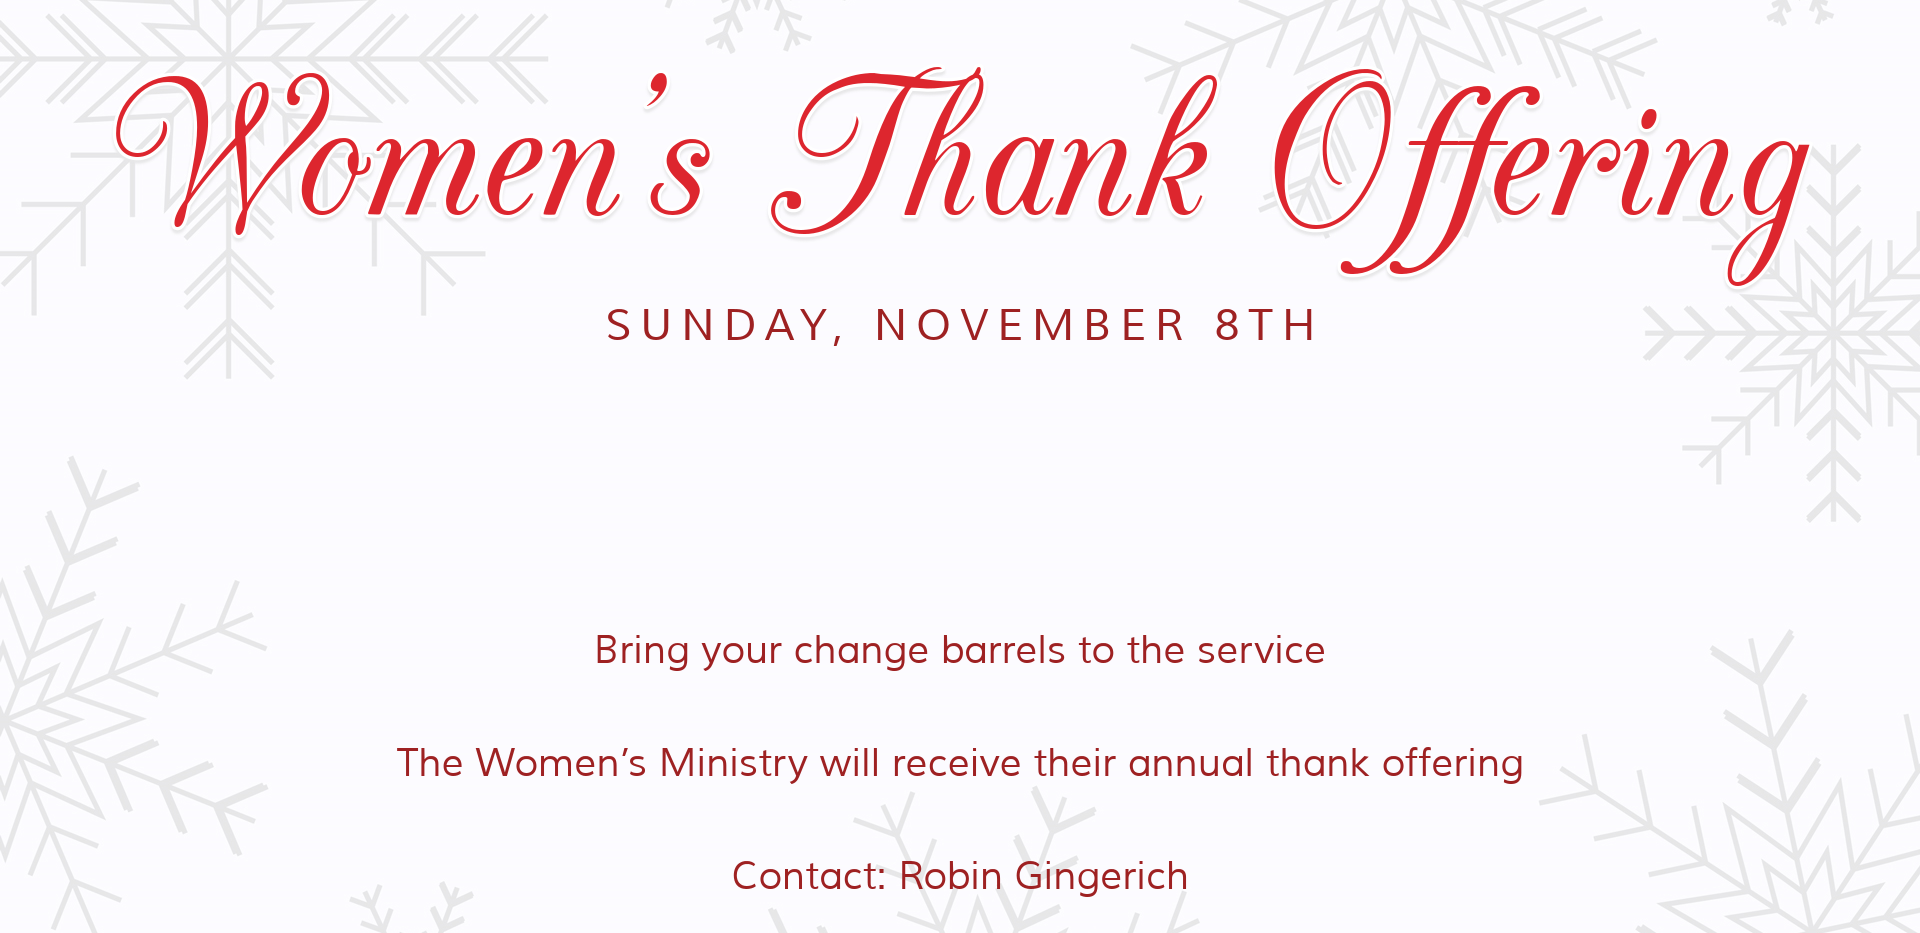 Women's Thank Offering.png